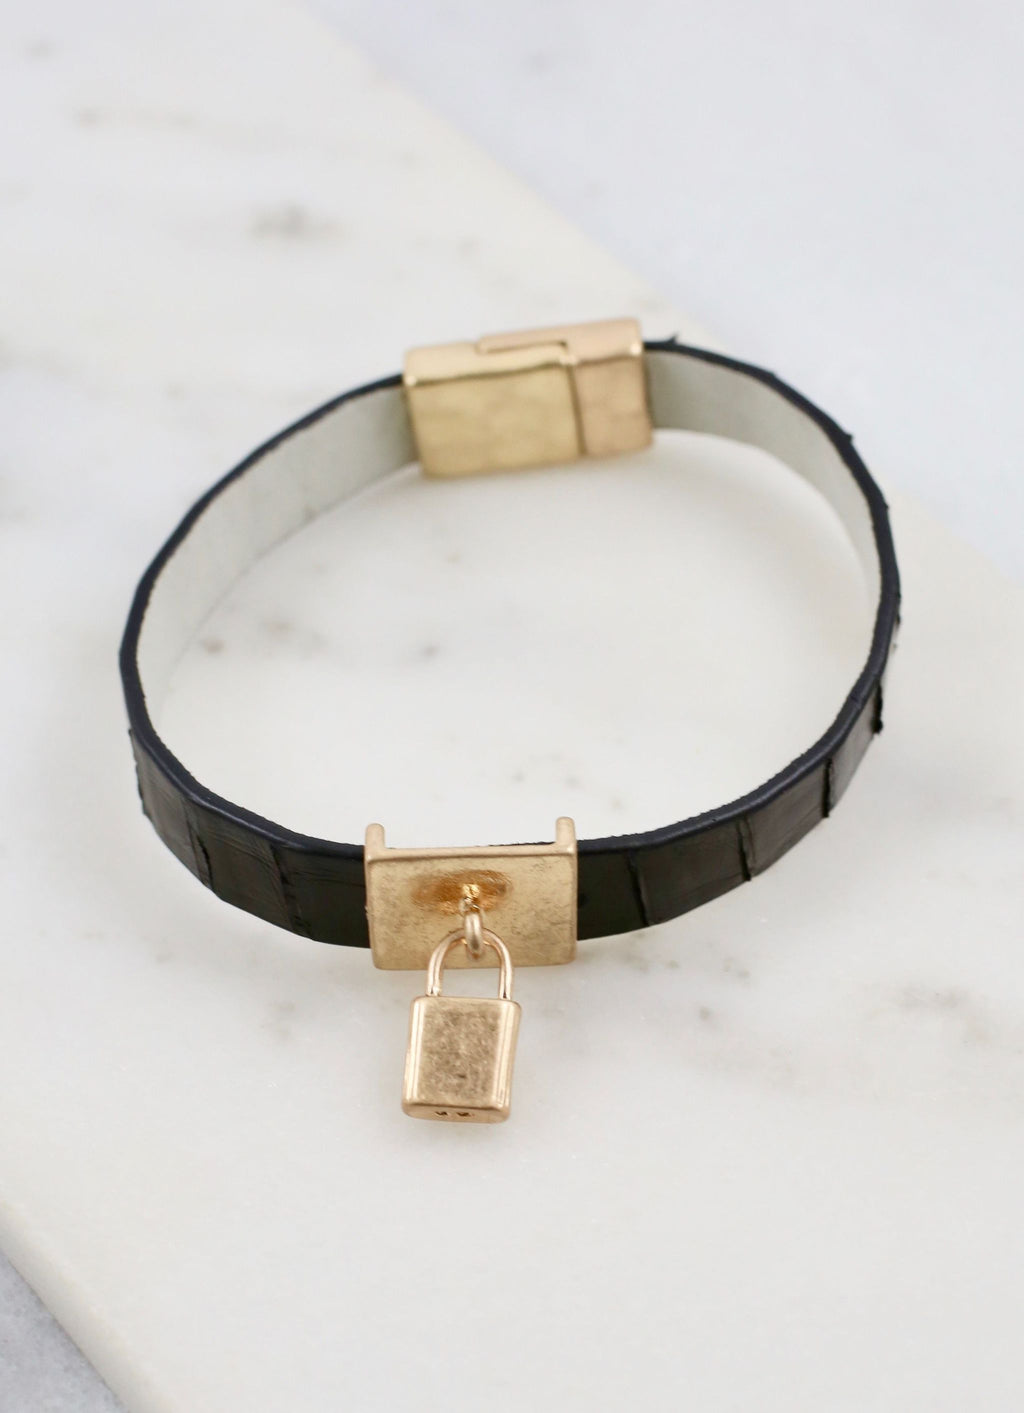 Baxter Magnetic Leather Bracelet With Lock Charm Black - Caroline Hill